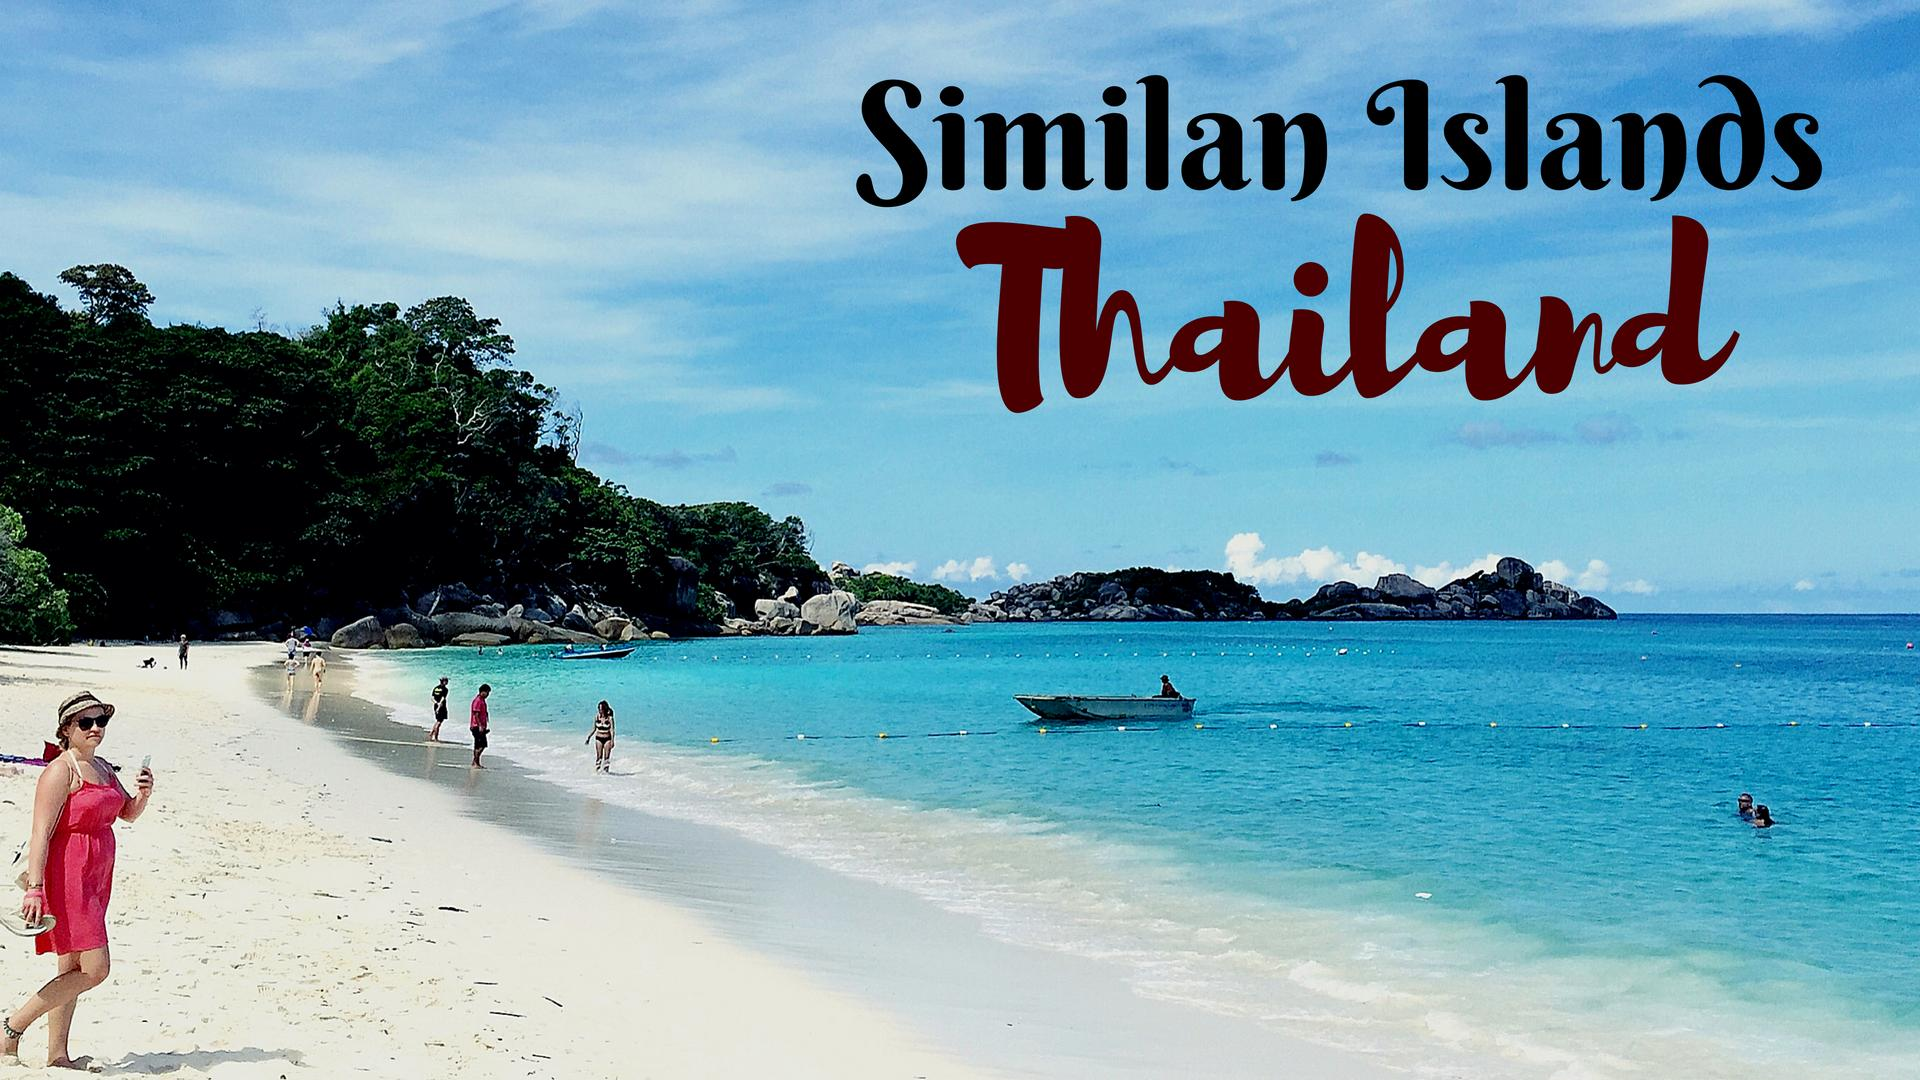 Similan Islands – Tranquil Hidden Gems in Thailand